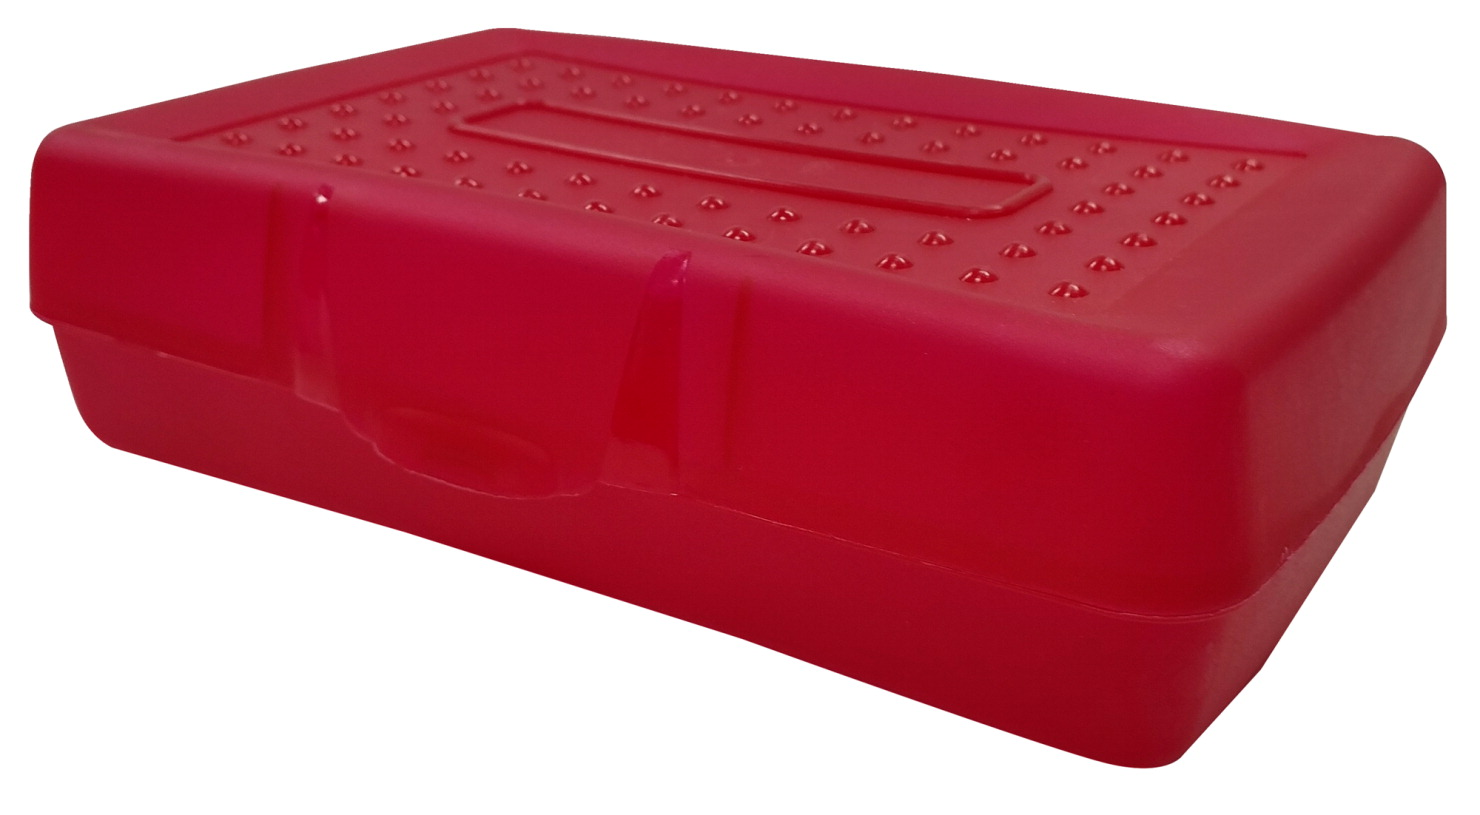 School Smart Light Duty Plastic Pencil Box, Red Tint